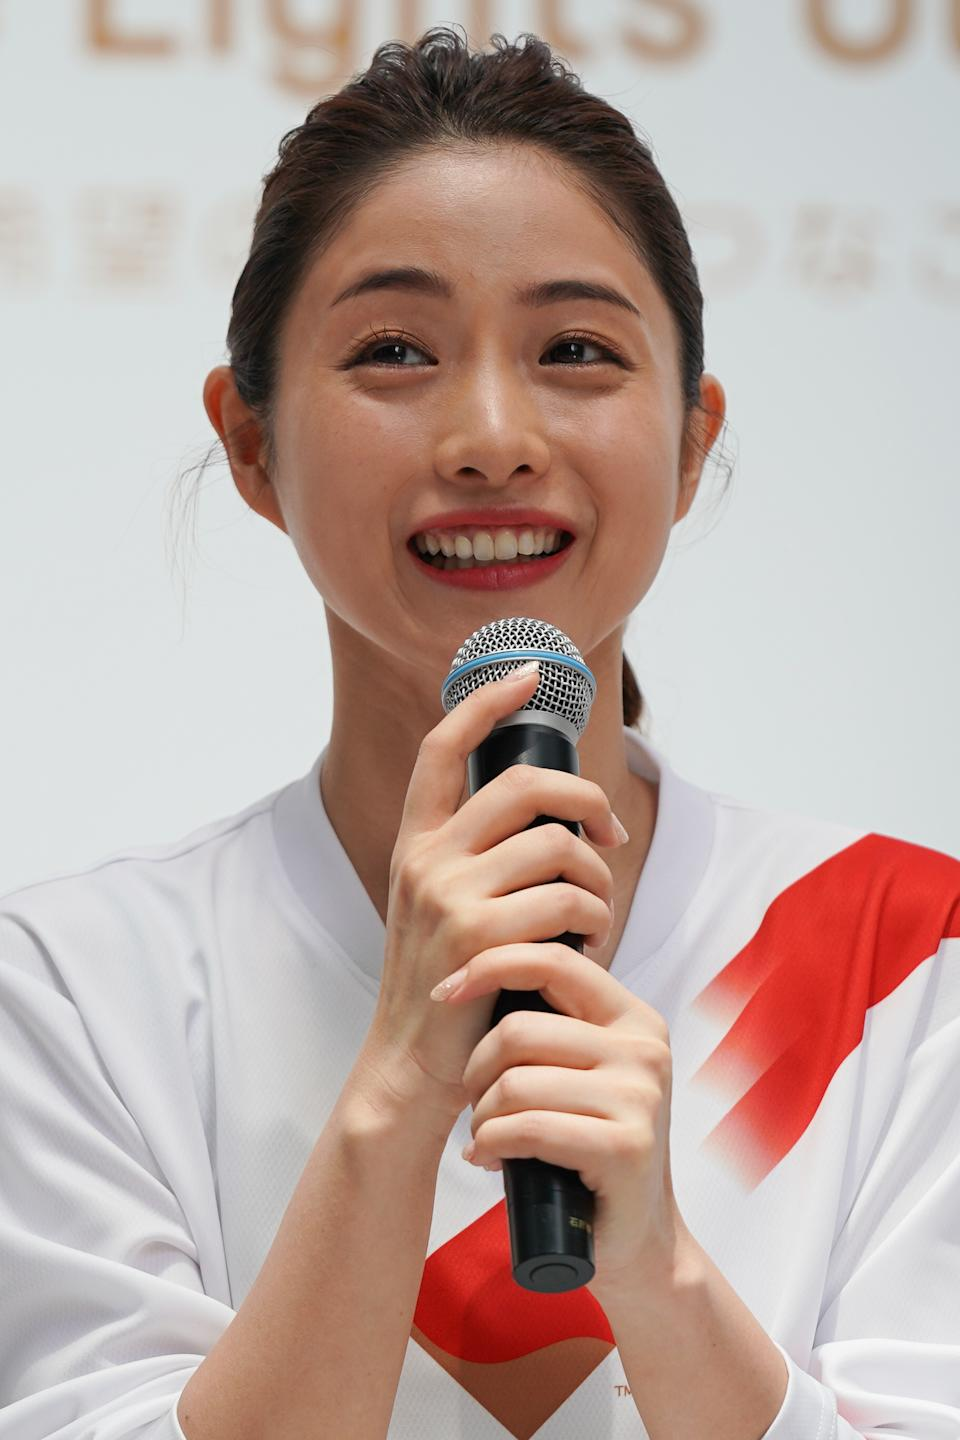 TOKYO, JAPAN - JUNE 01: Tokyo 2020 Torch Relay Official Ambassador Satomi Ishihara speaks during the Tokyo 2020 Torch Relay 300 Days To Go event at the Tokyo Midtown on June 01, 2019 in Tokyo, Japan. (Photo by Christopher Jue/Getty Images)